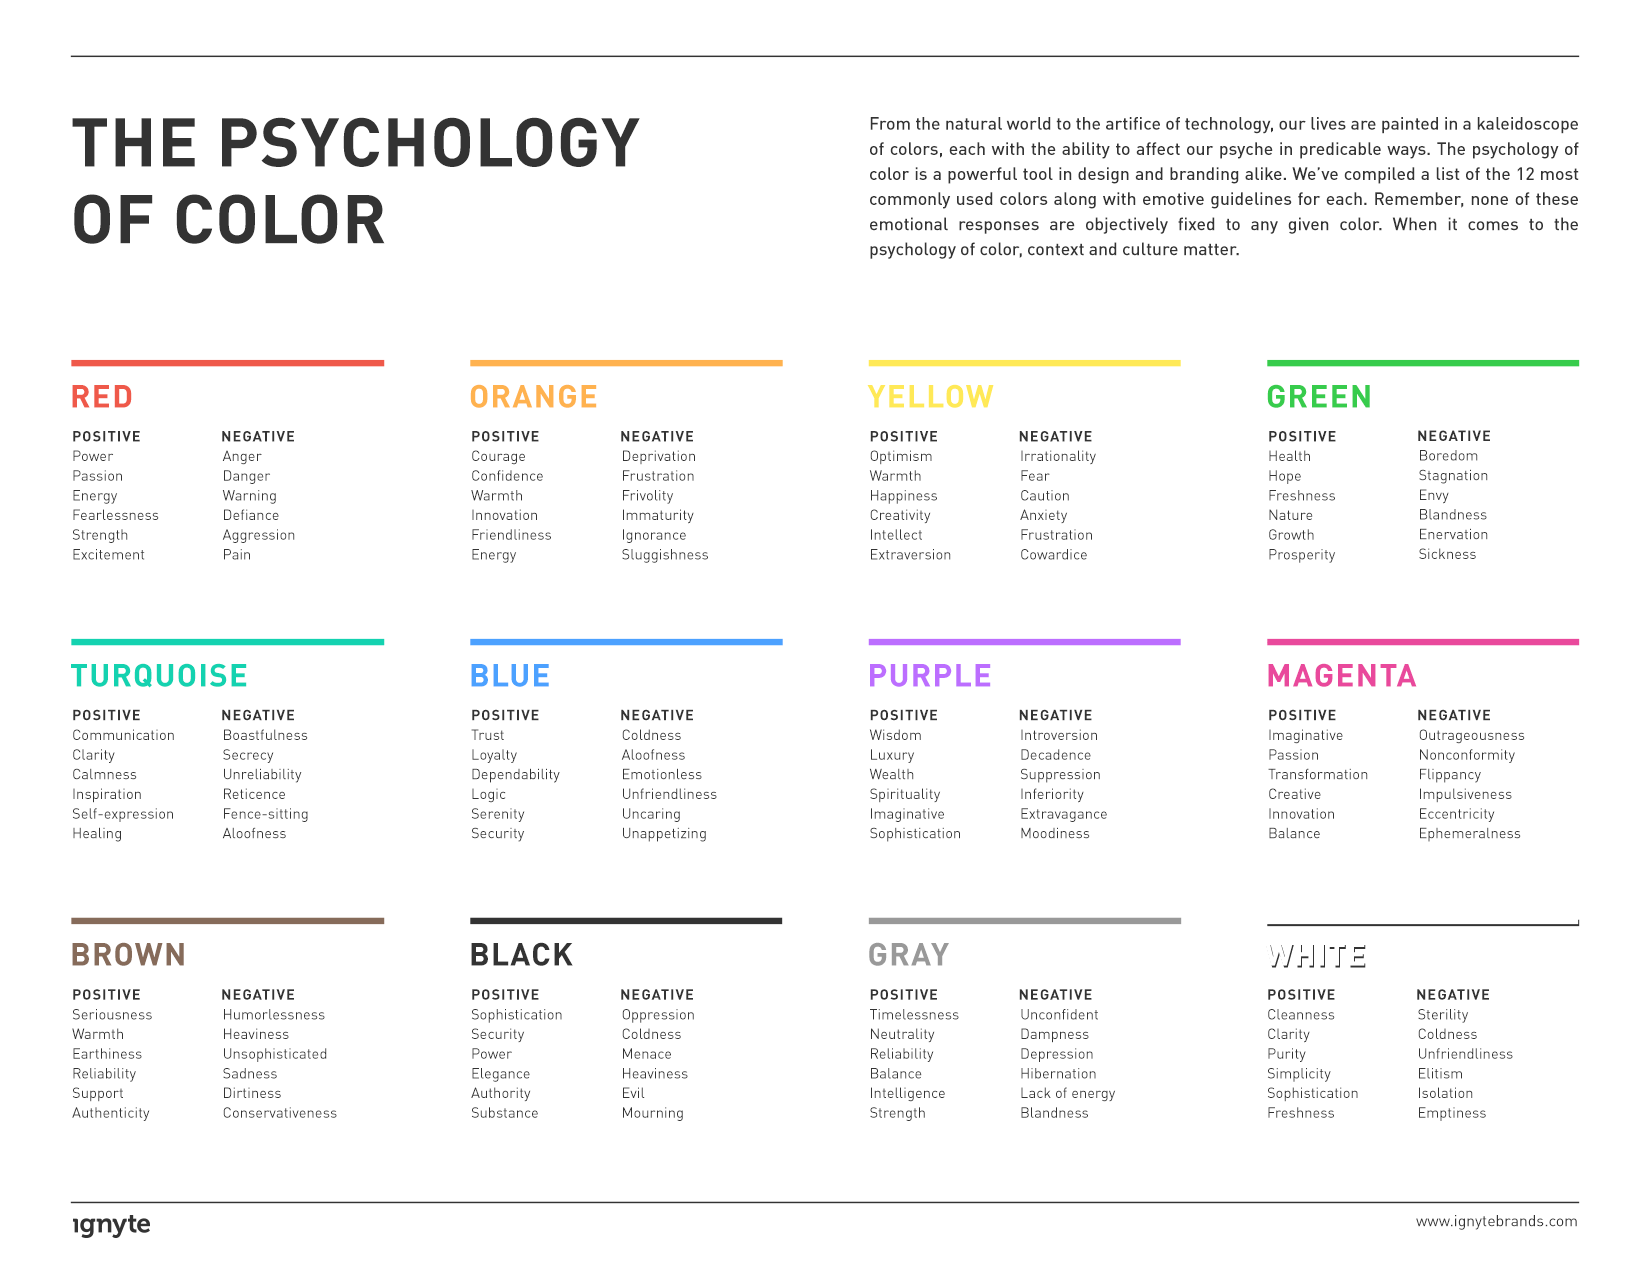 the psychology of red Because web design needs to have an influence over people's behavior, designers have been looking to the psychology of color to help them create websites.